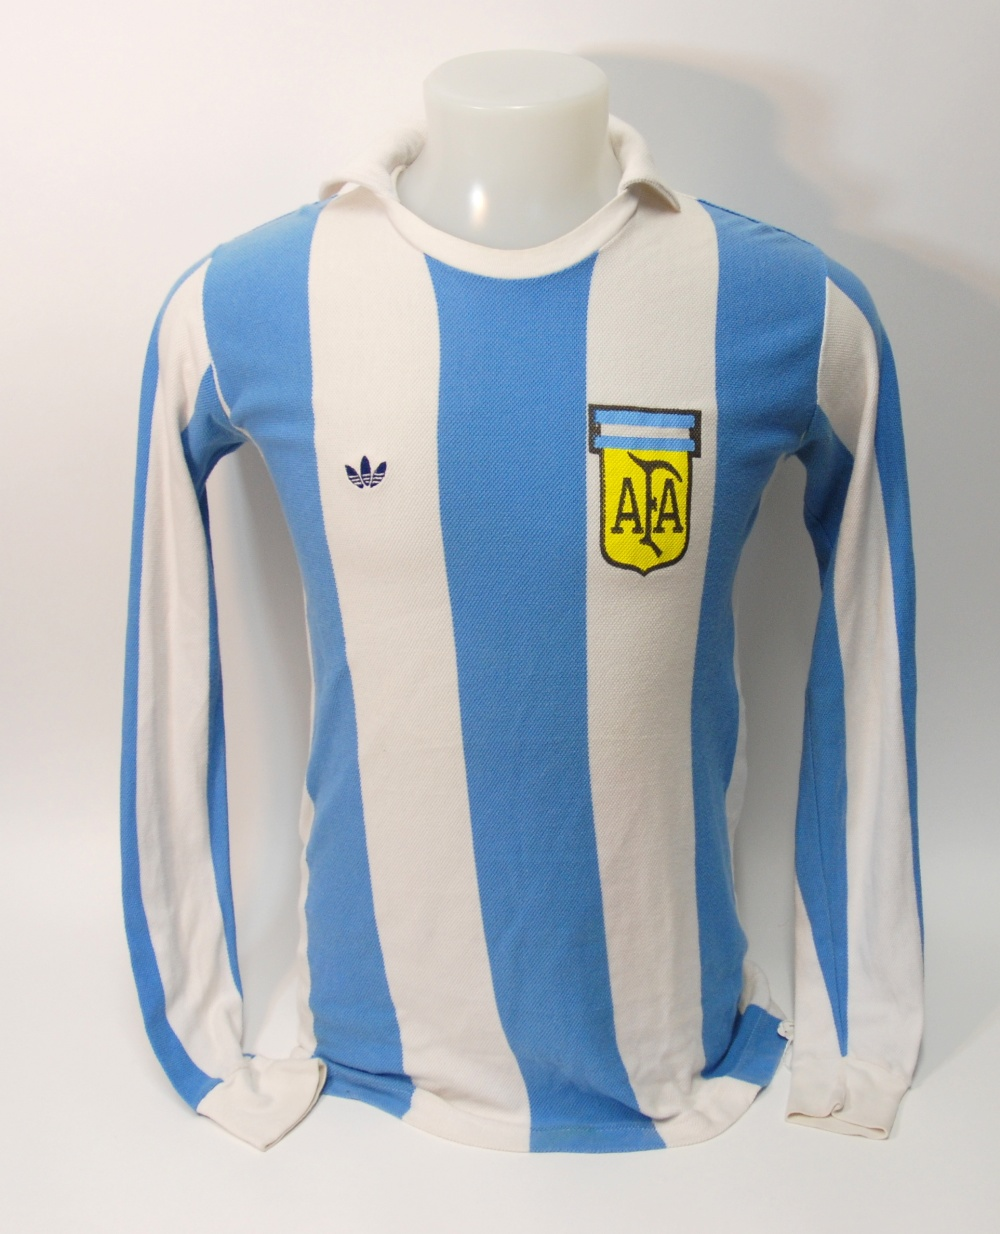 Lot 231 - A blue and white Argentina International shirt No.10, with crew-neck collar and printed badge AFA,